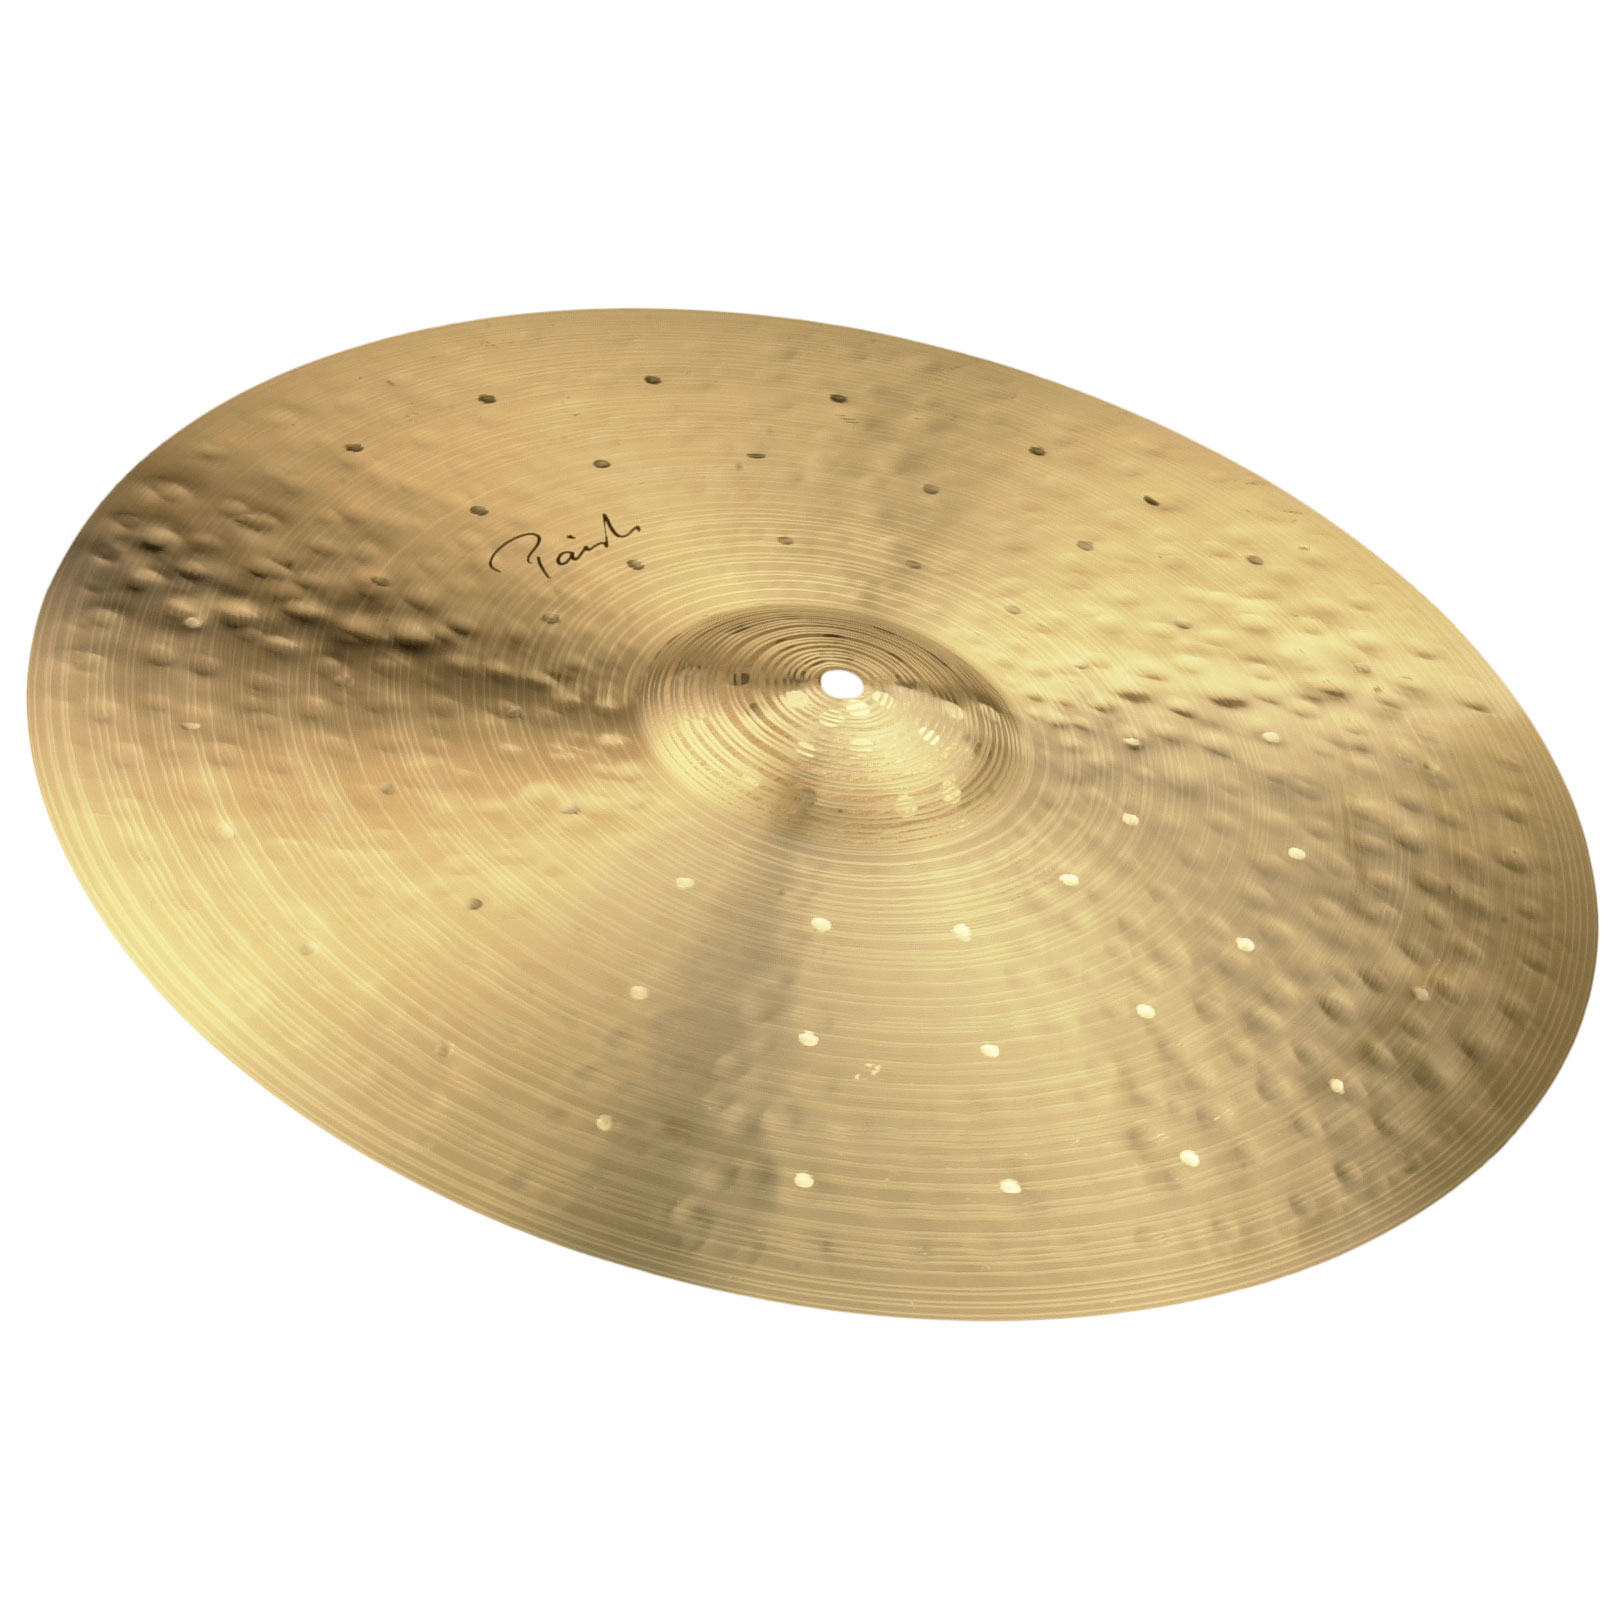 "Paiste 20"" Signature Traditional Light Ride Cymbal"